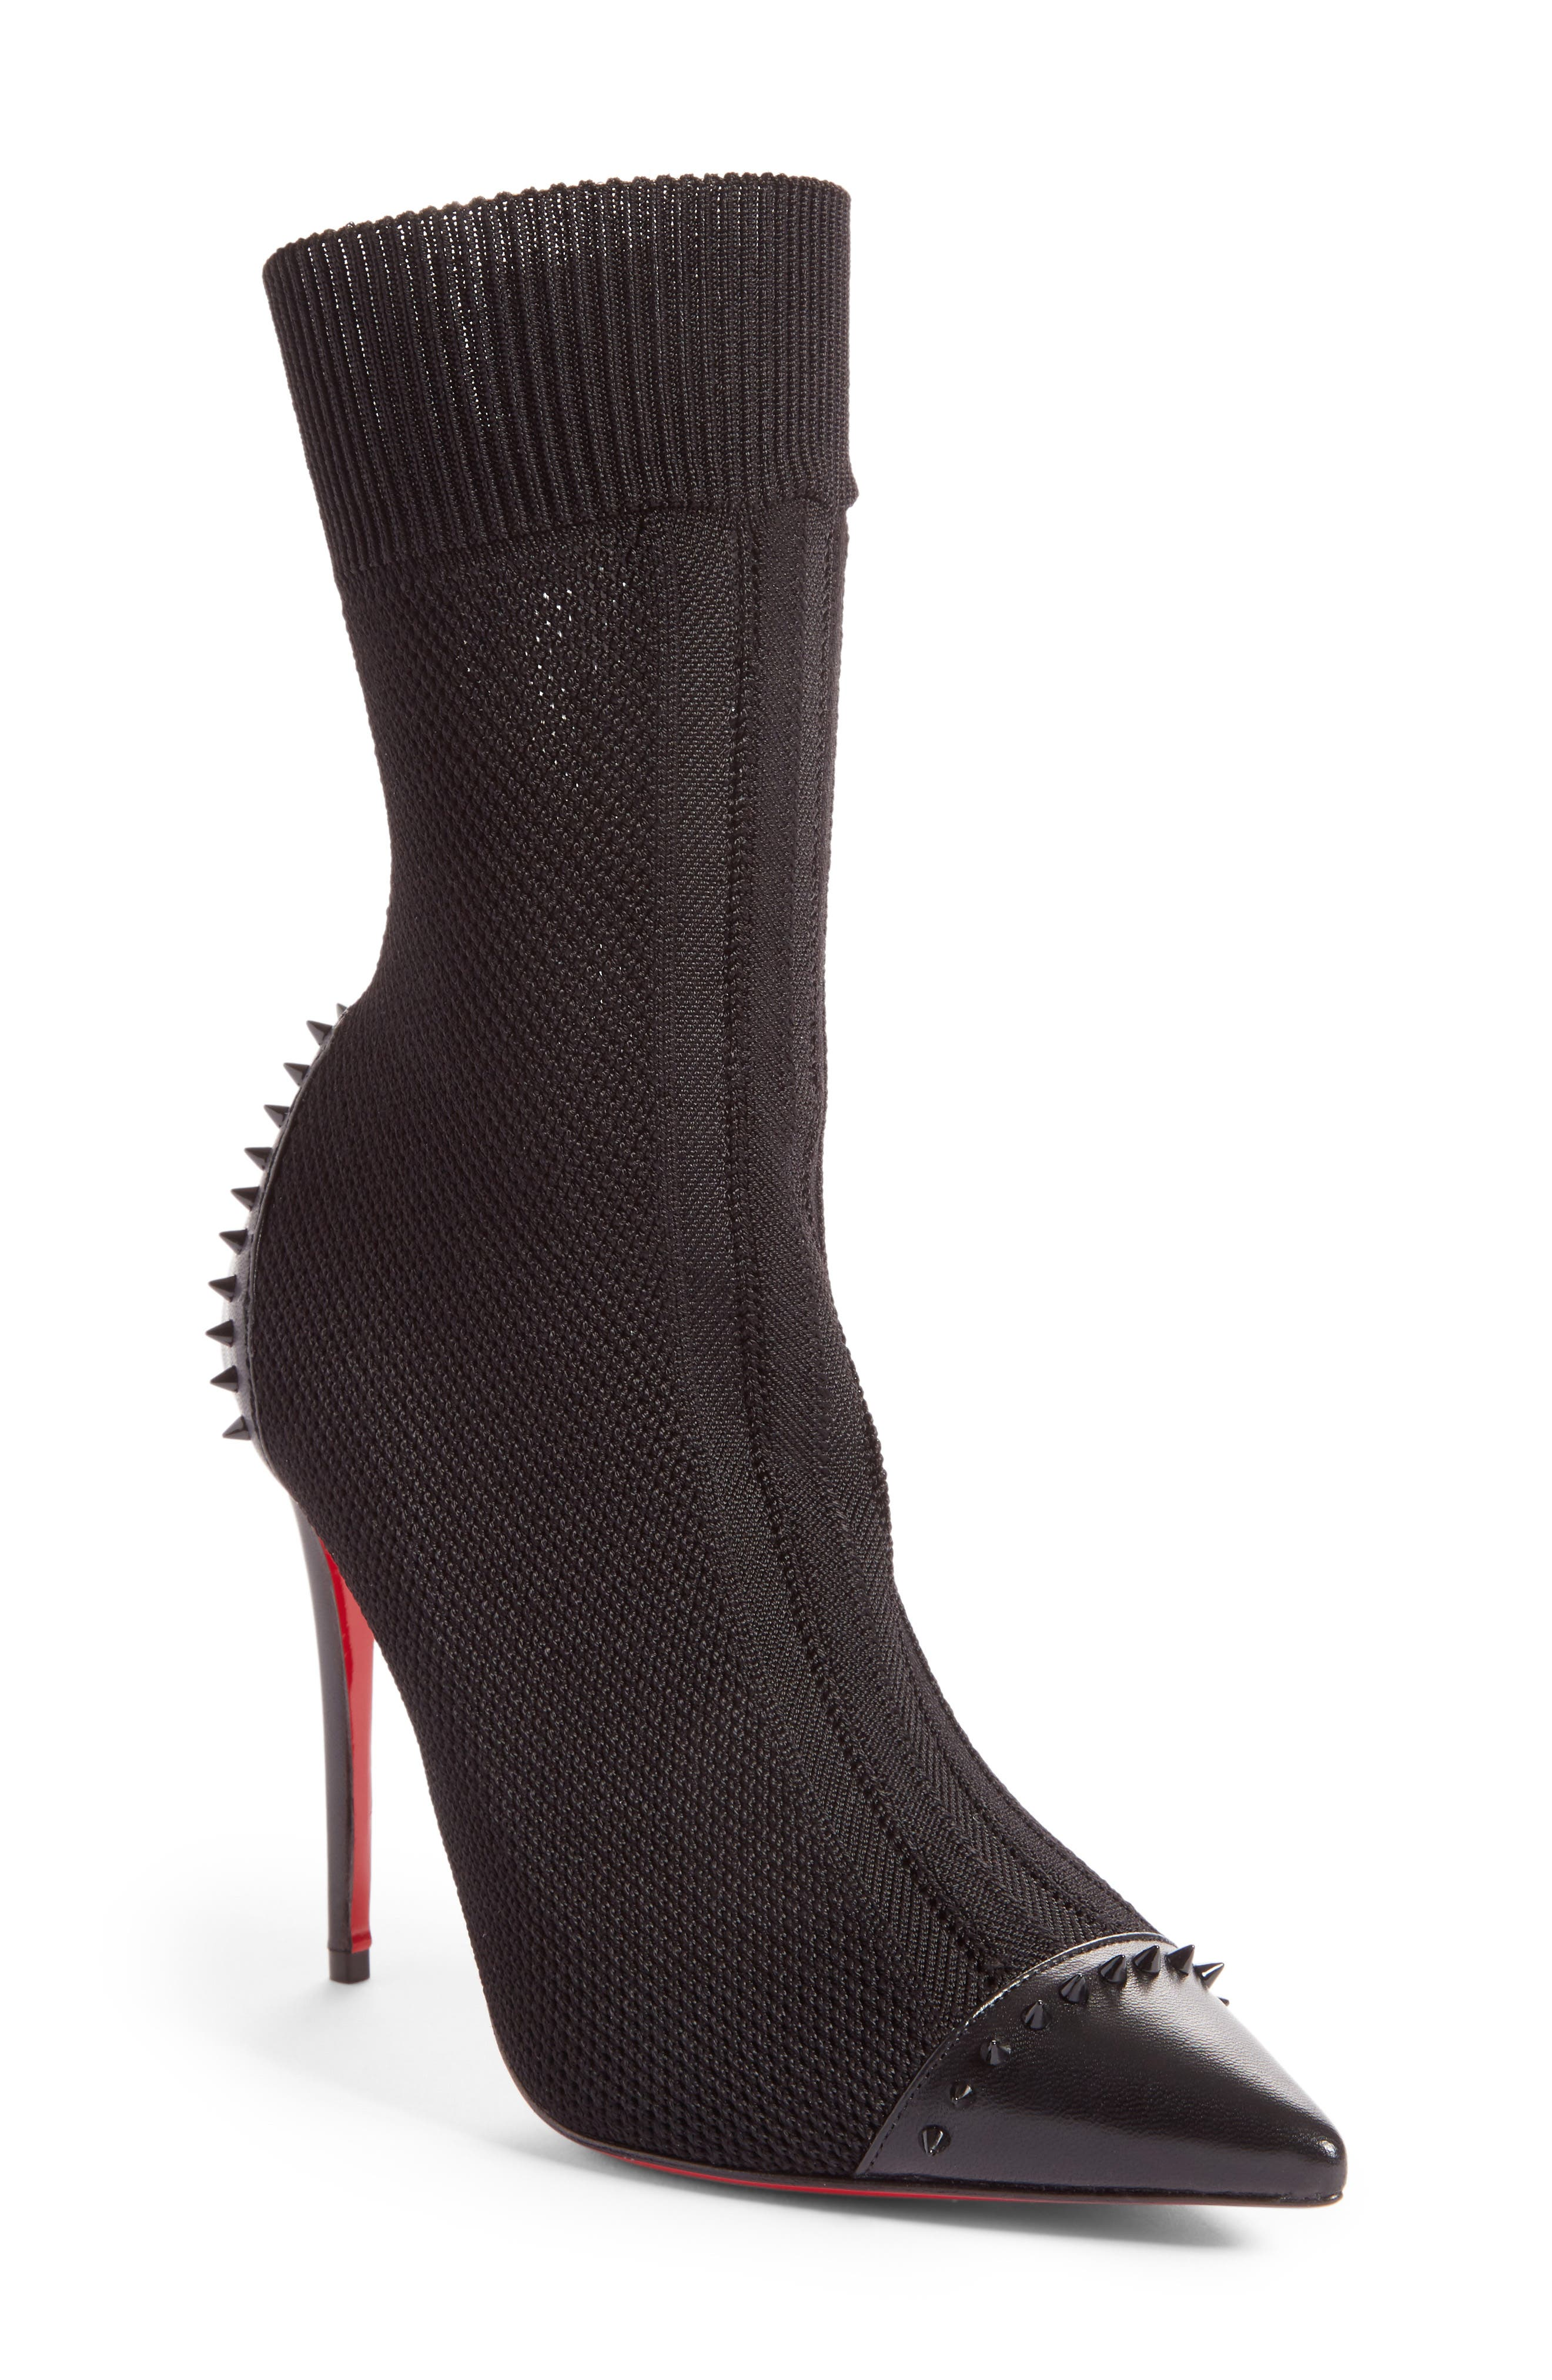 1382bf485a1 Christian Louboutin Women s Boots Shoes